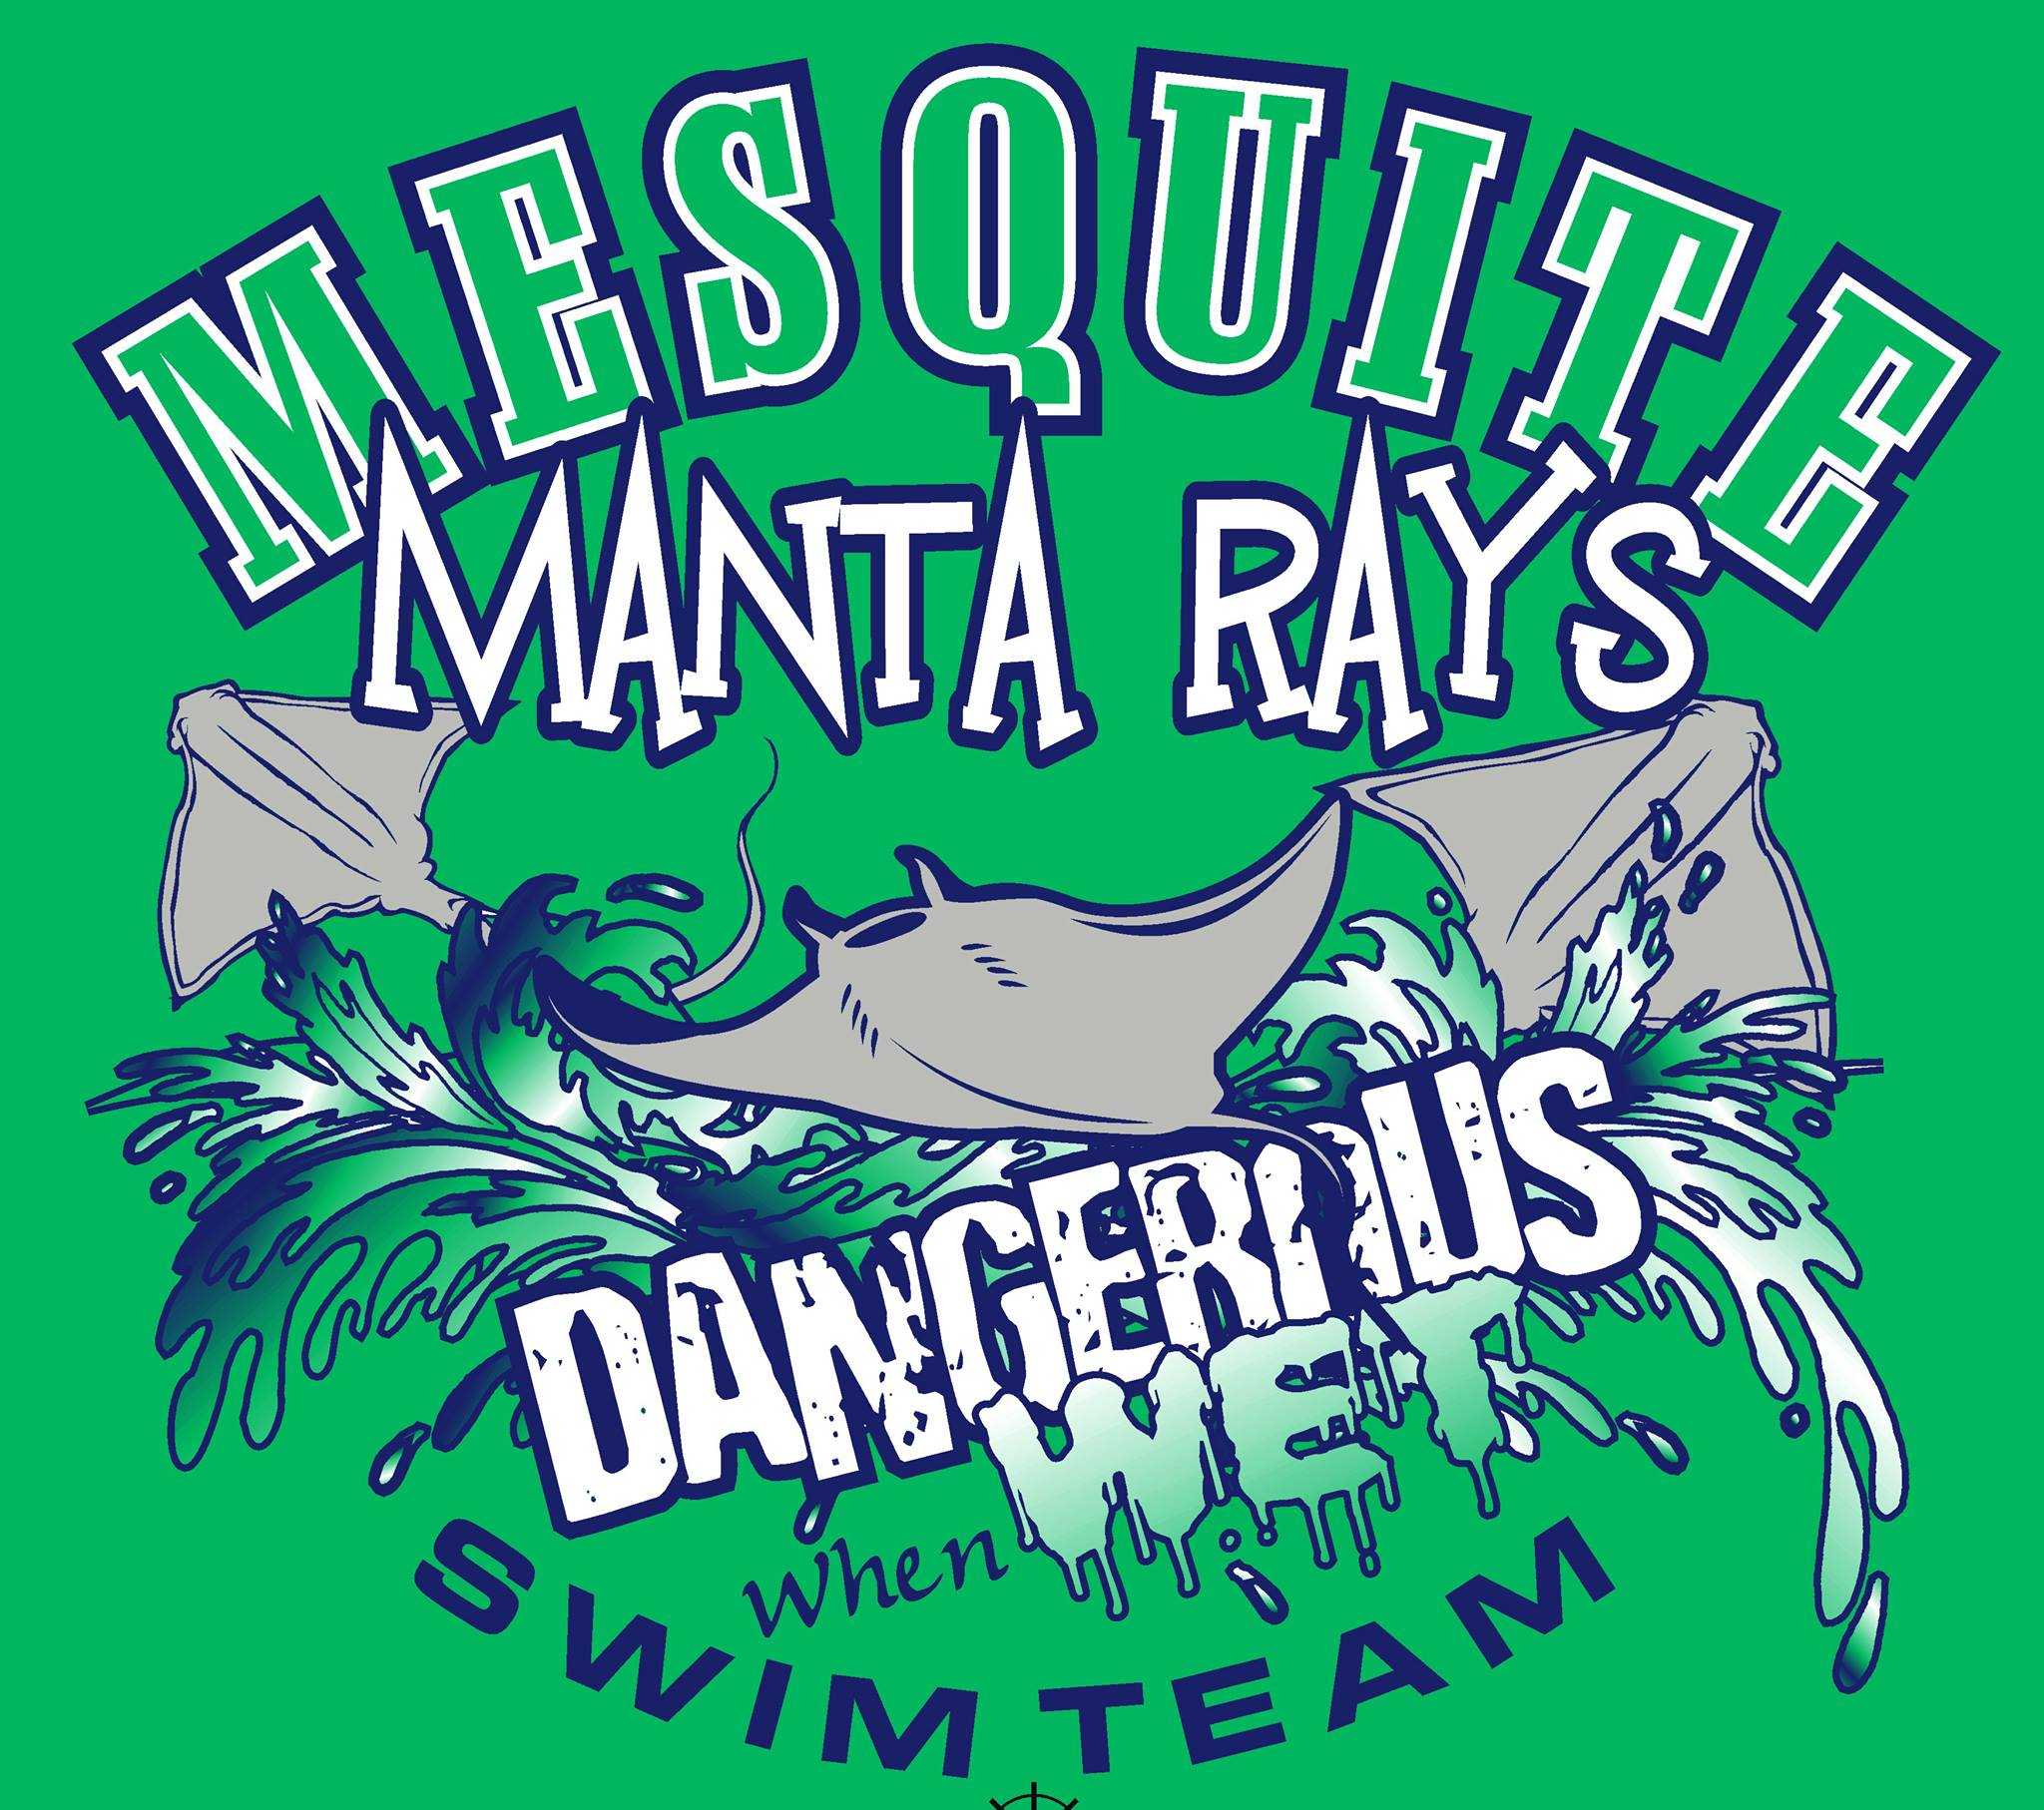 """THE MANTA RAYS"" Summer Swim Team"